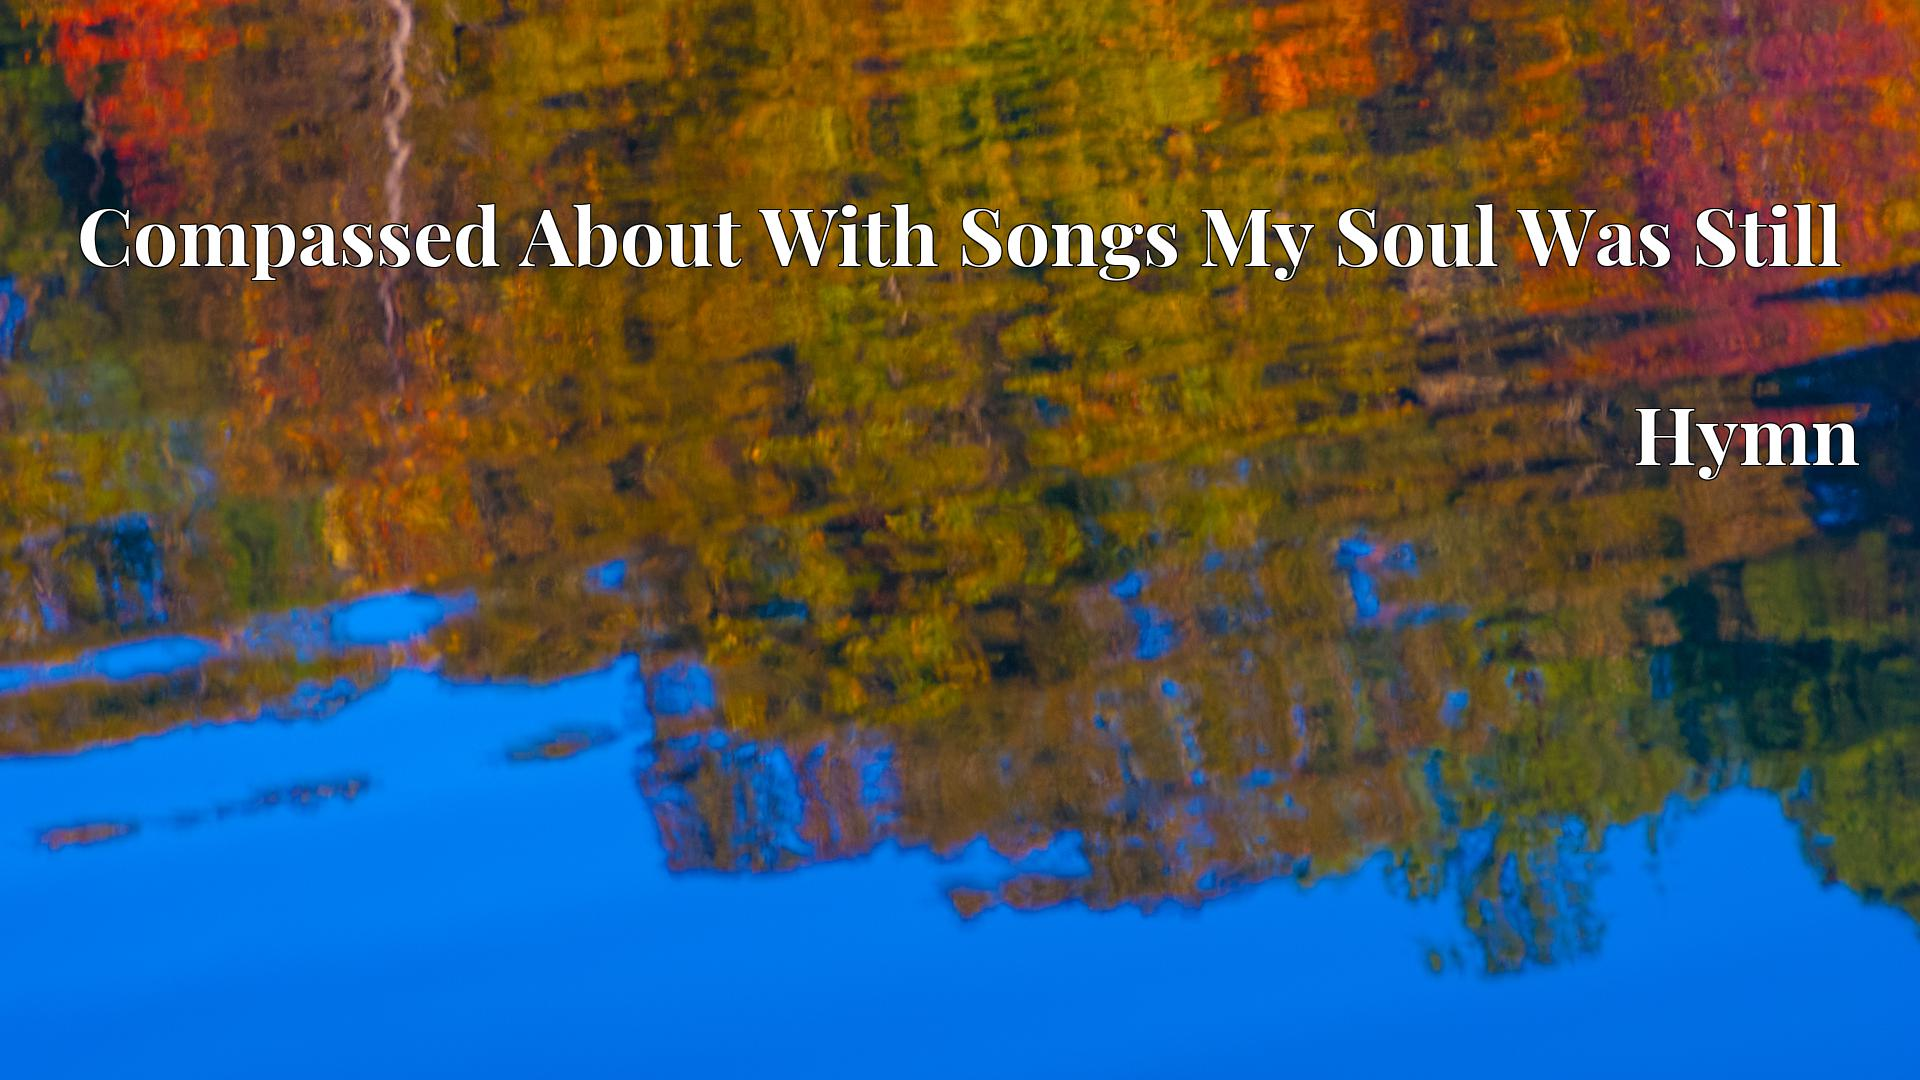 Compassed About With Songs My Soul Was Still - Hymn